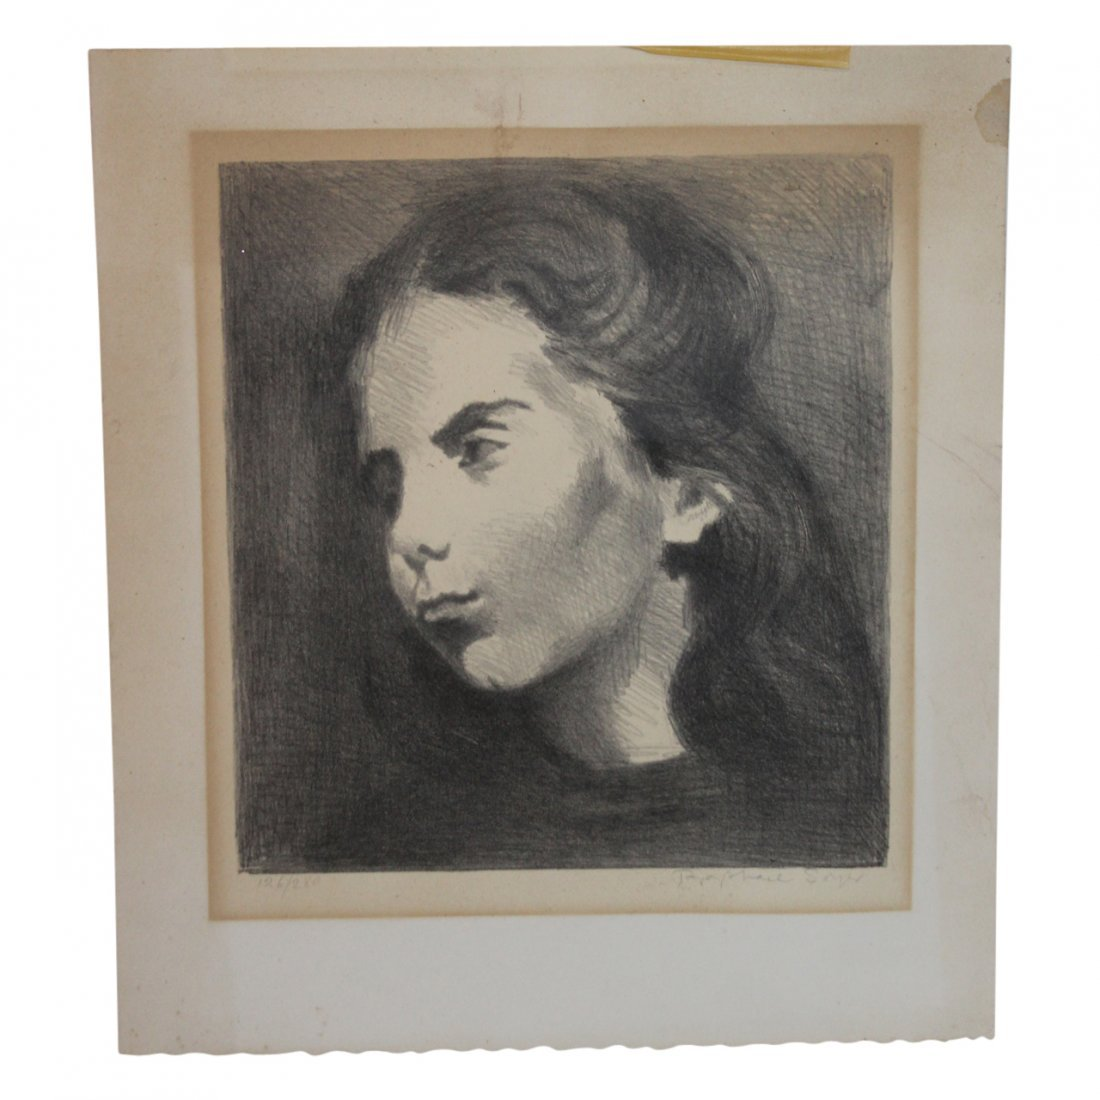 Raphael Soyer Lithograph Signed